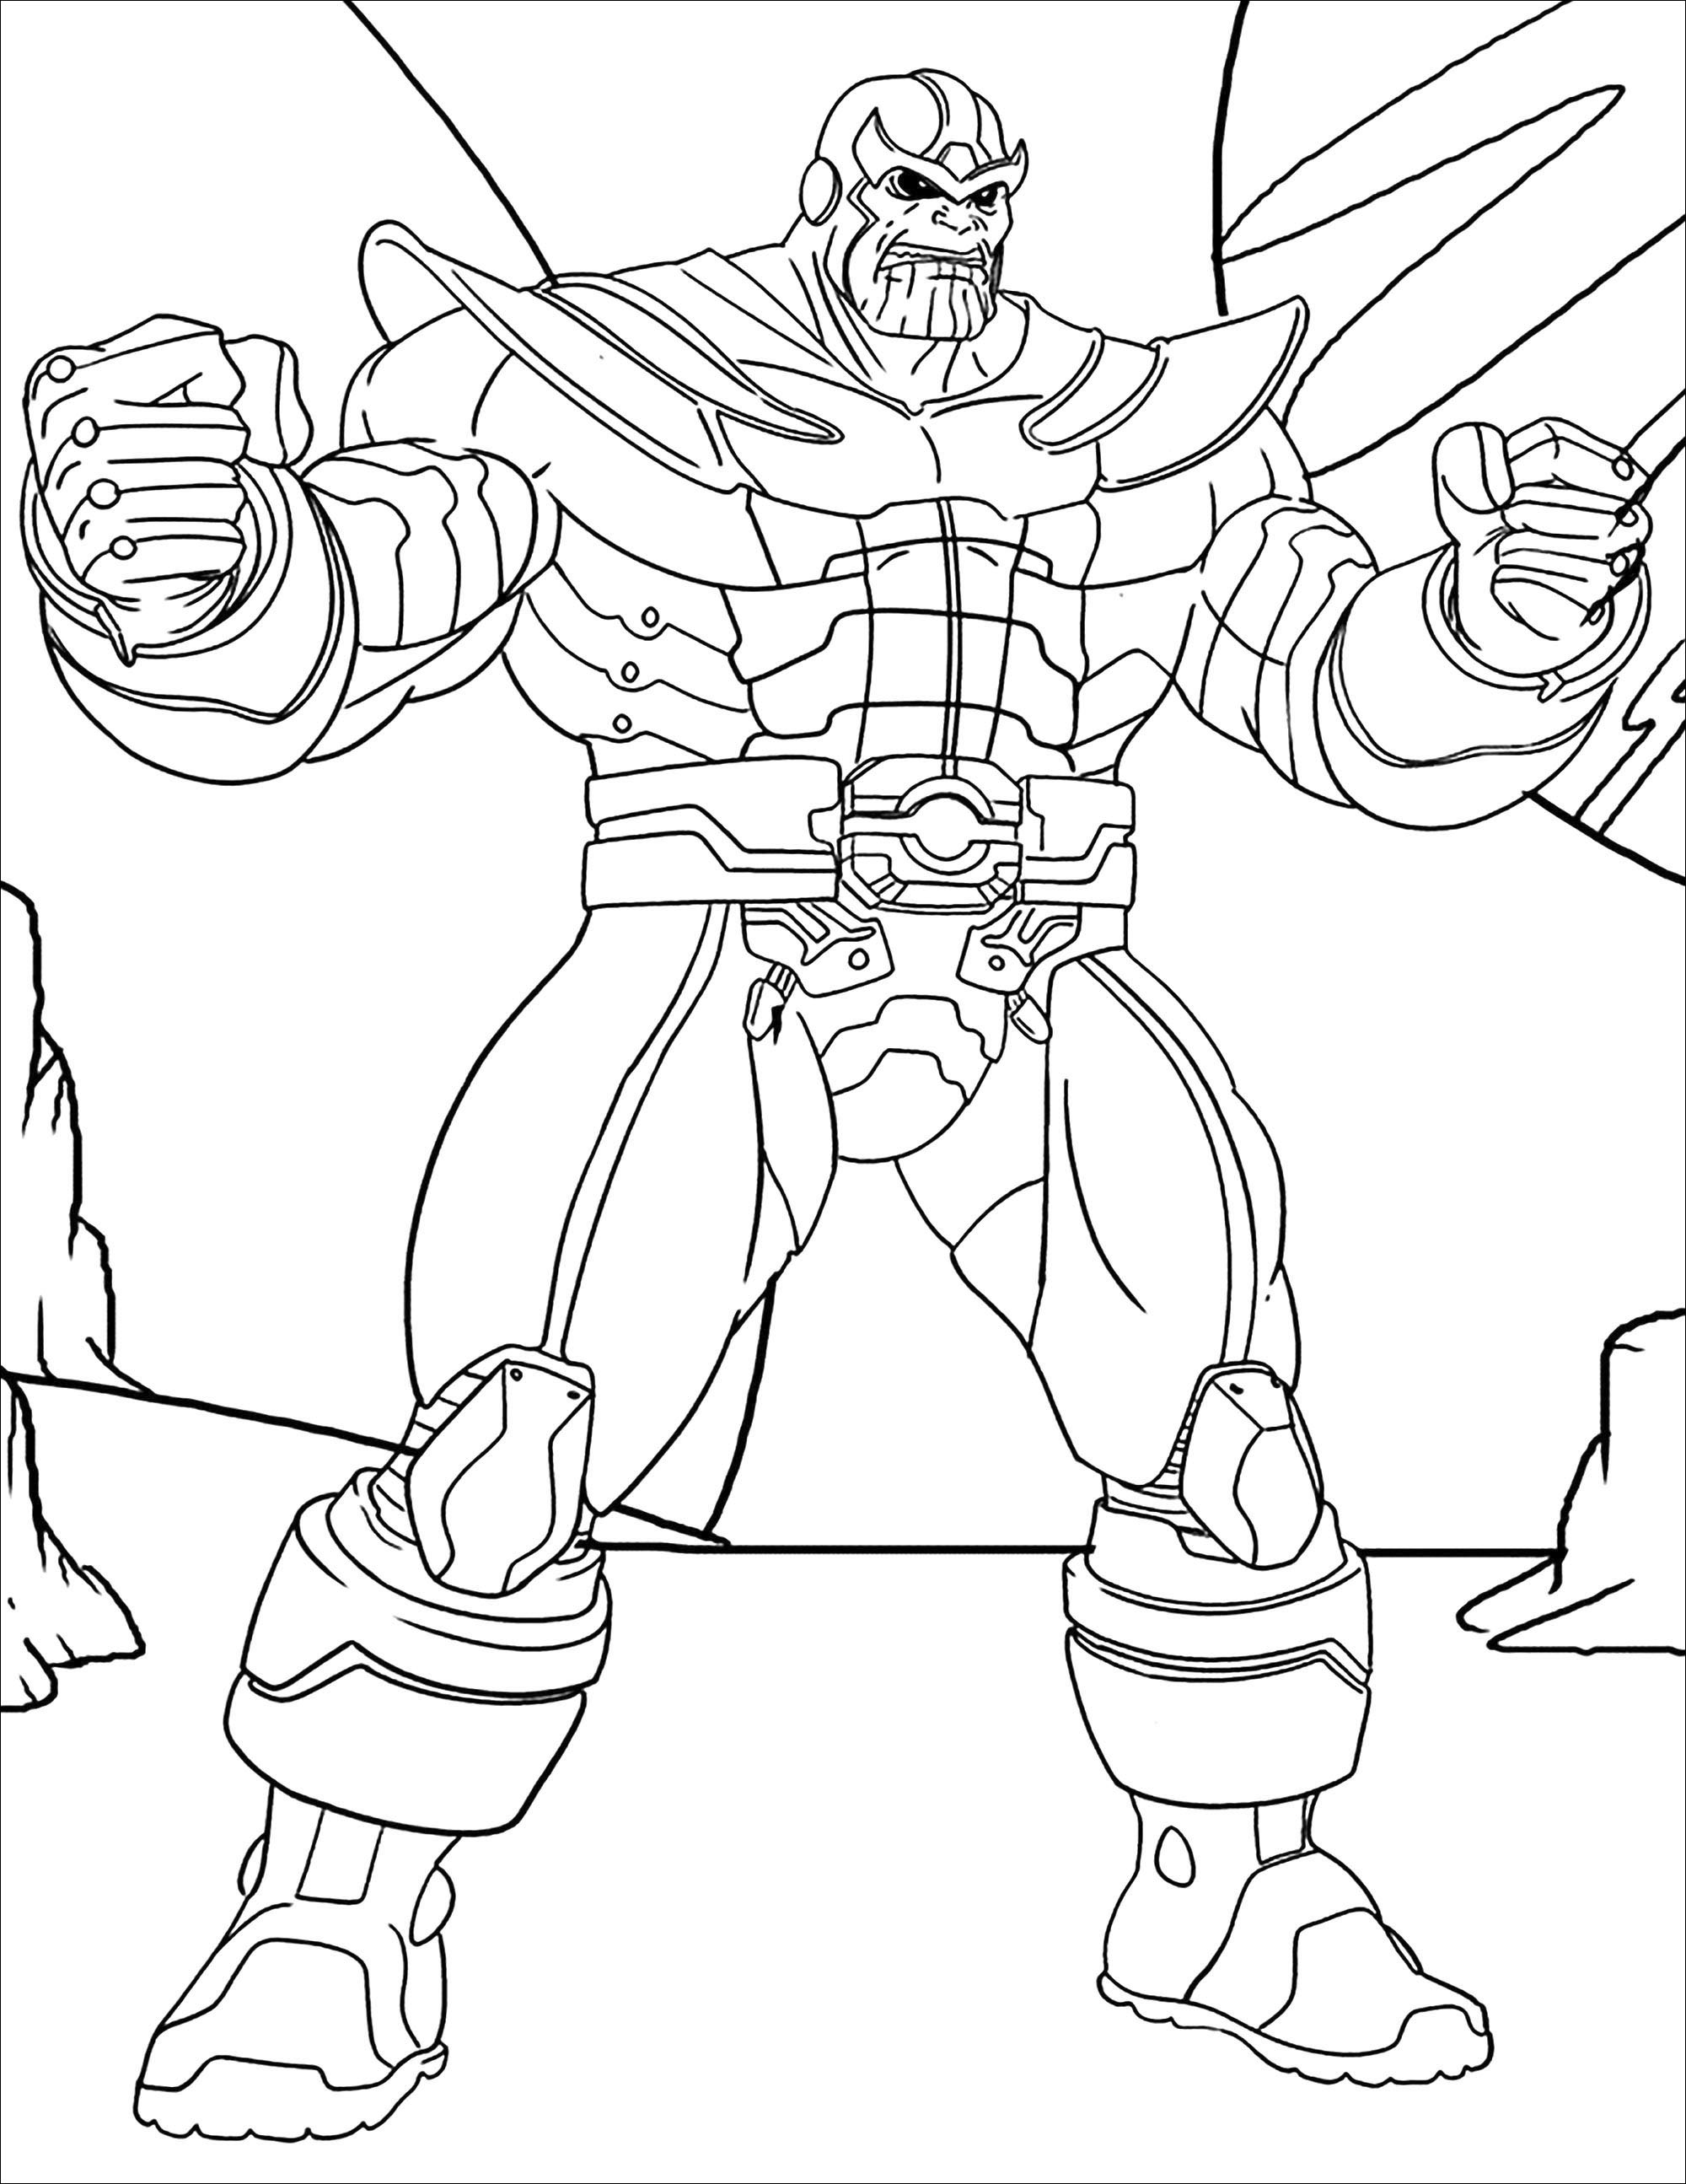 Funny free Thanos coloring page to print and color